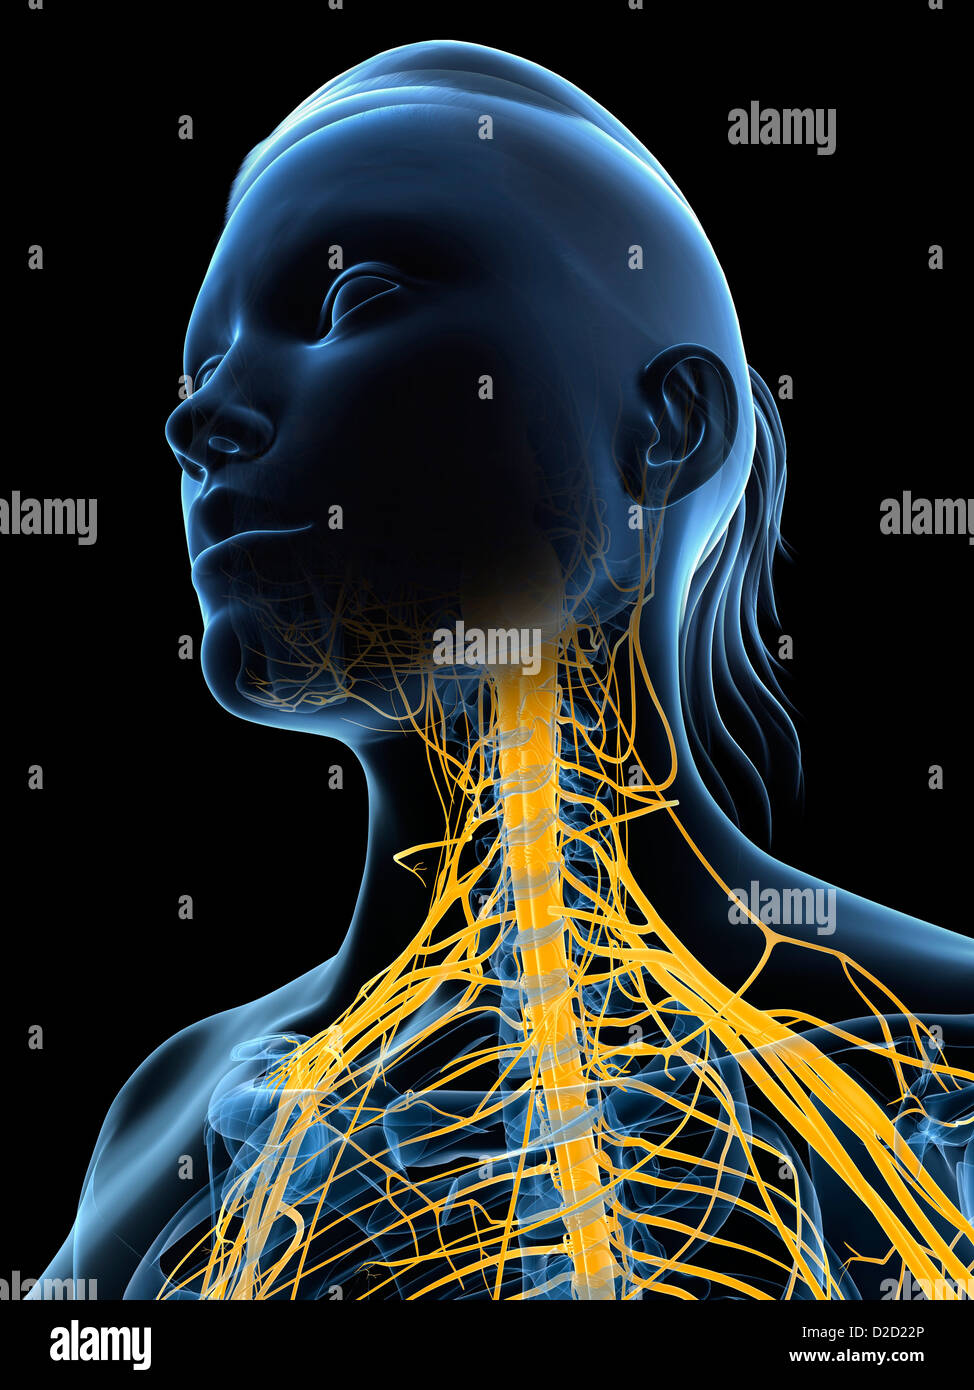 Female nervous system computer artwork head and shoulders - Stock Image